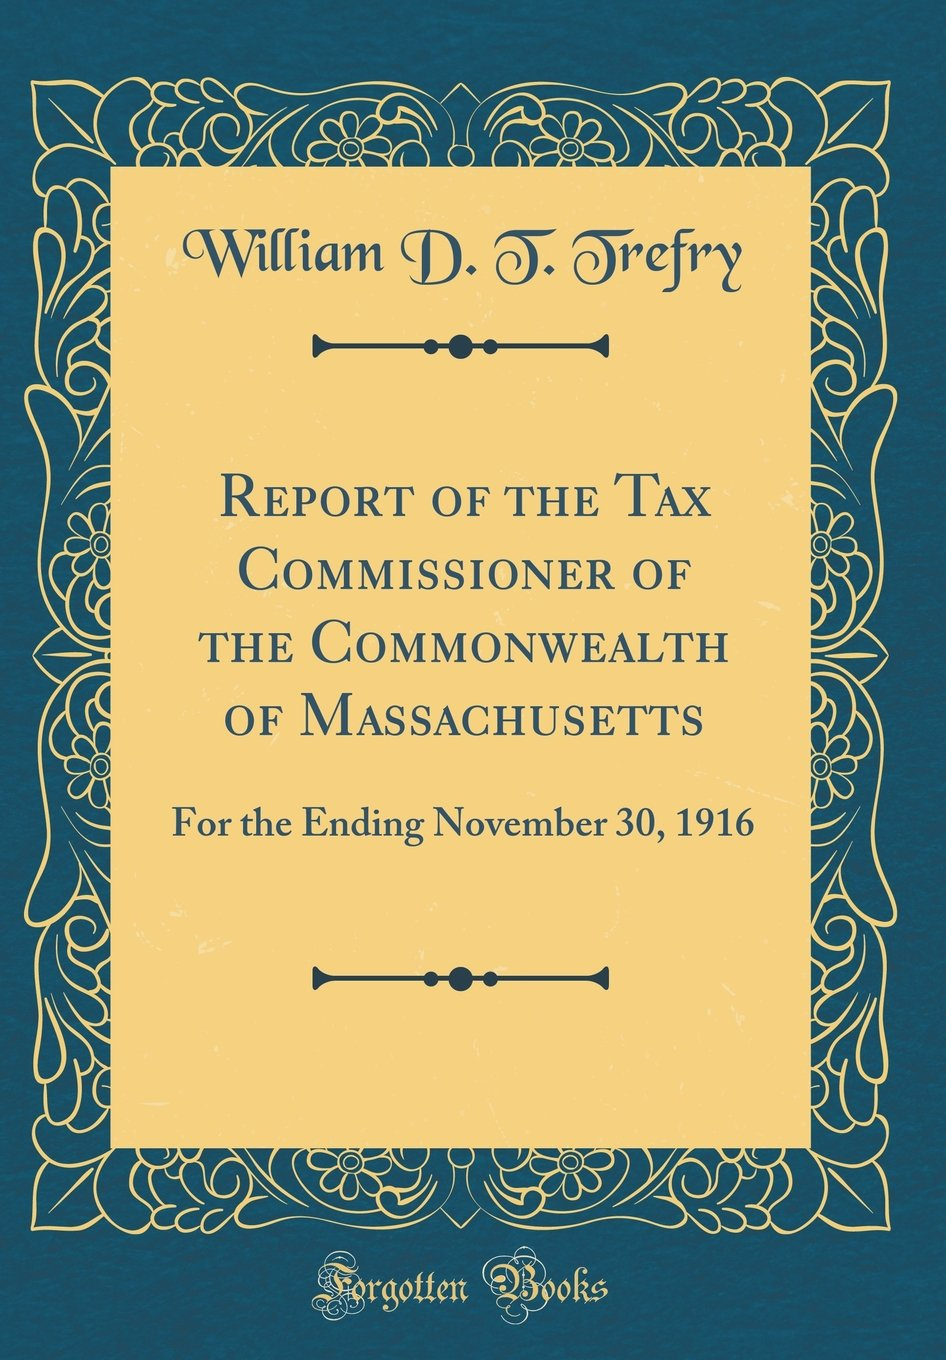 Report of the Tax Commissioner of the Commonwealth of Massachusetts: For the Ending November 30, 1916 (Classic Reprint) PDF